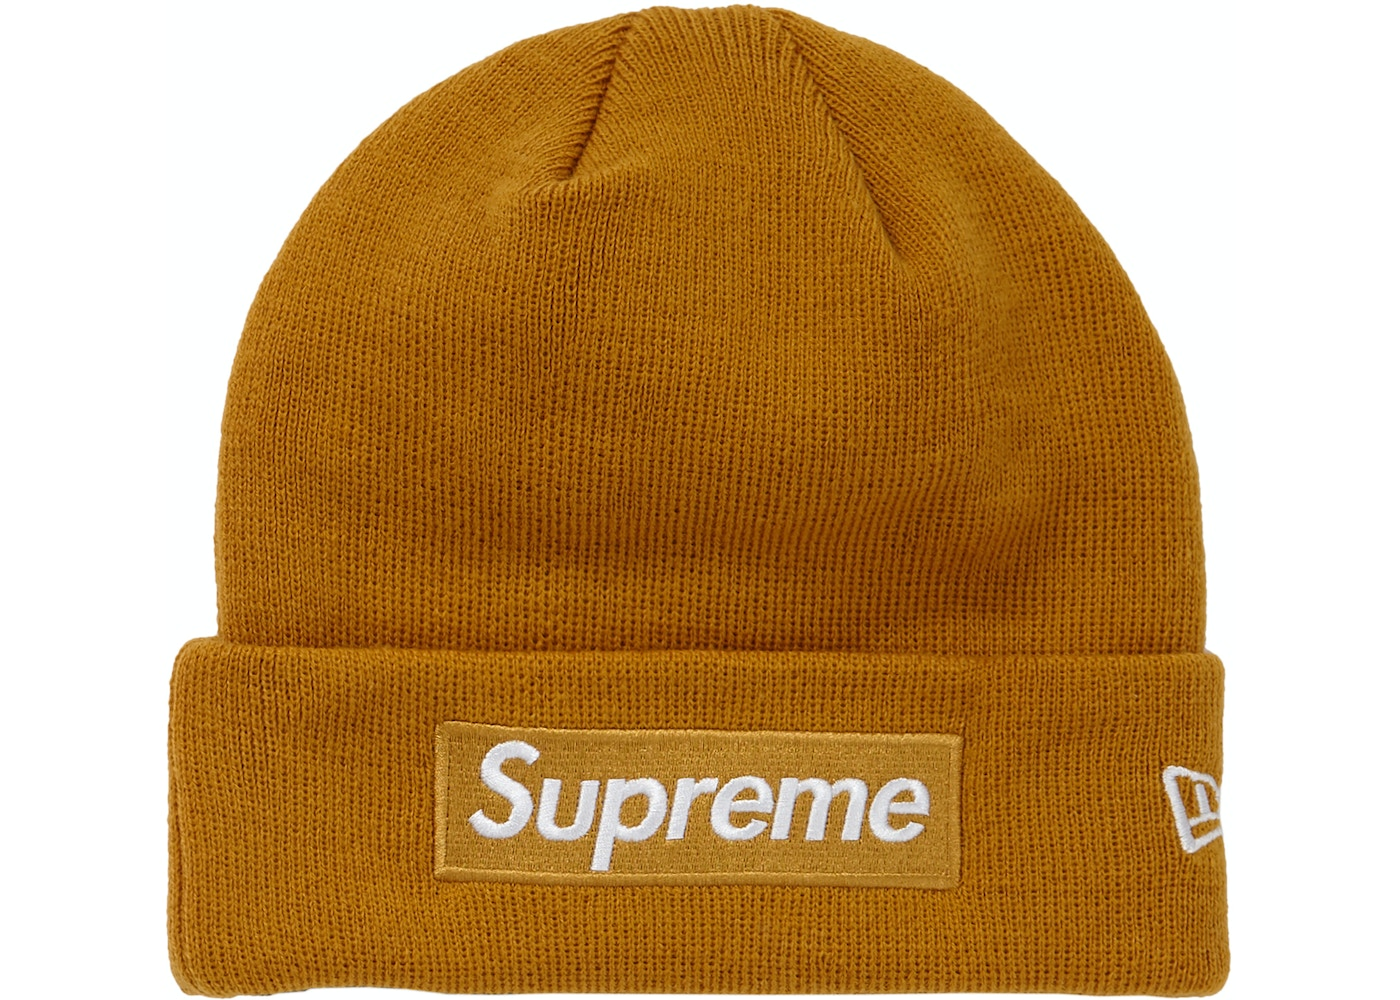 Streetwear - Supreme Headwear - Highest Bid 2771d53df87a